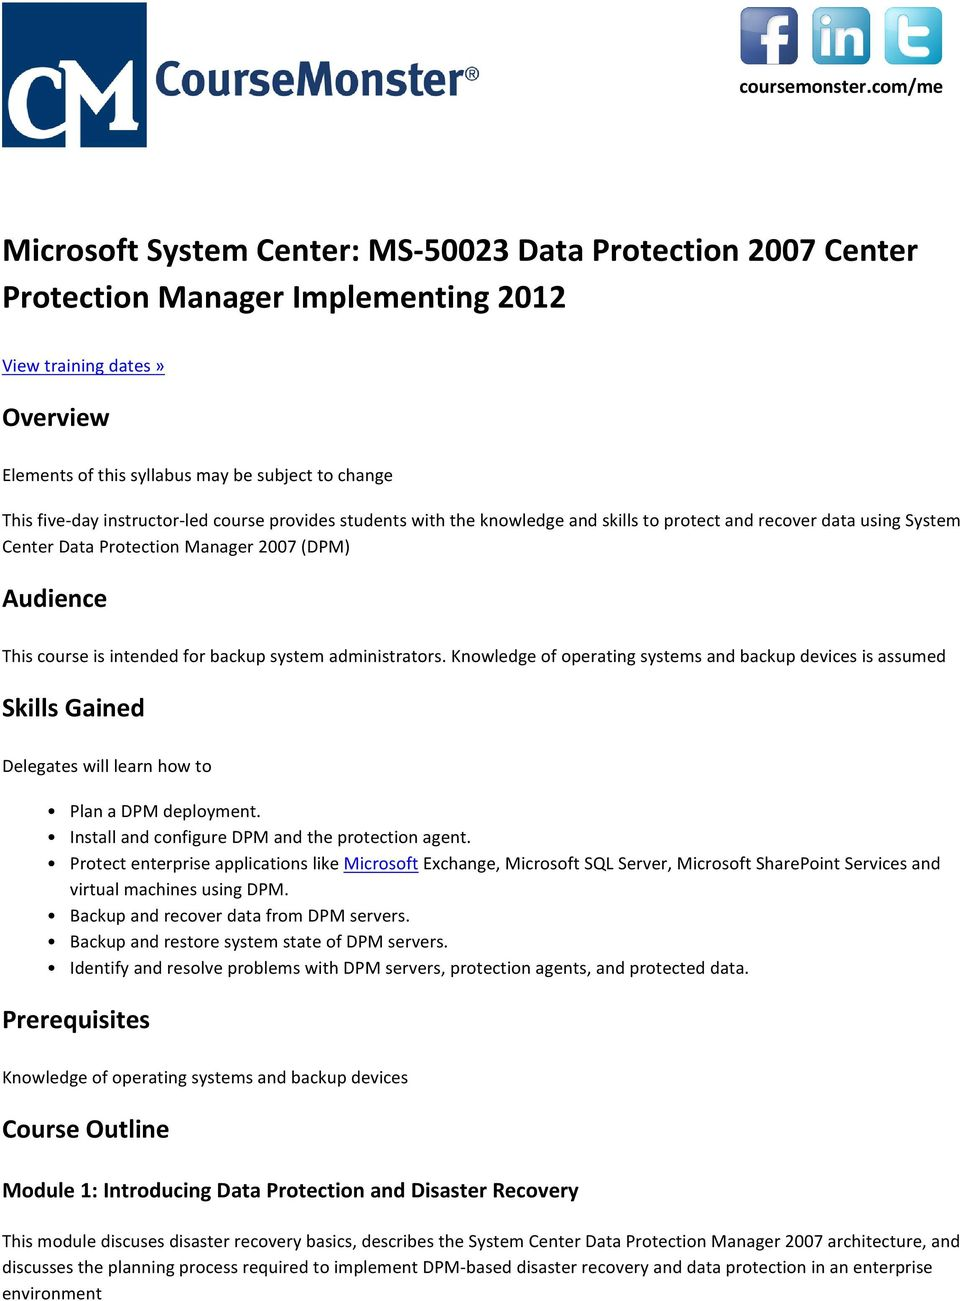 five-day instructor-led course provides students with the knowledge and skills to protect and recover data using System Center Data Protection Manager 2007 (DPM) Audience This course is intended for